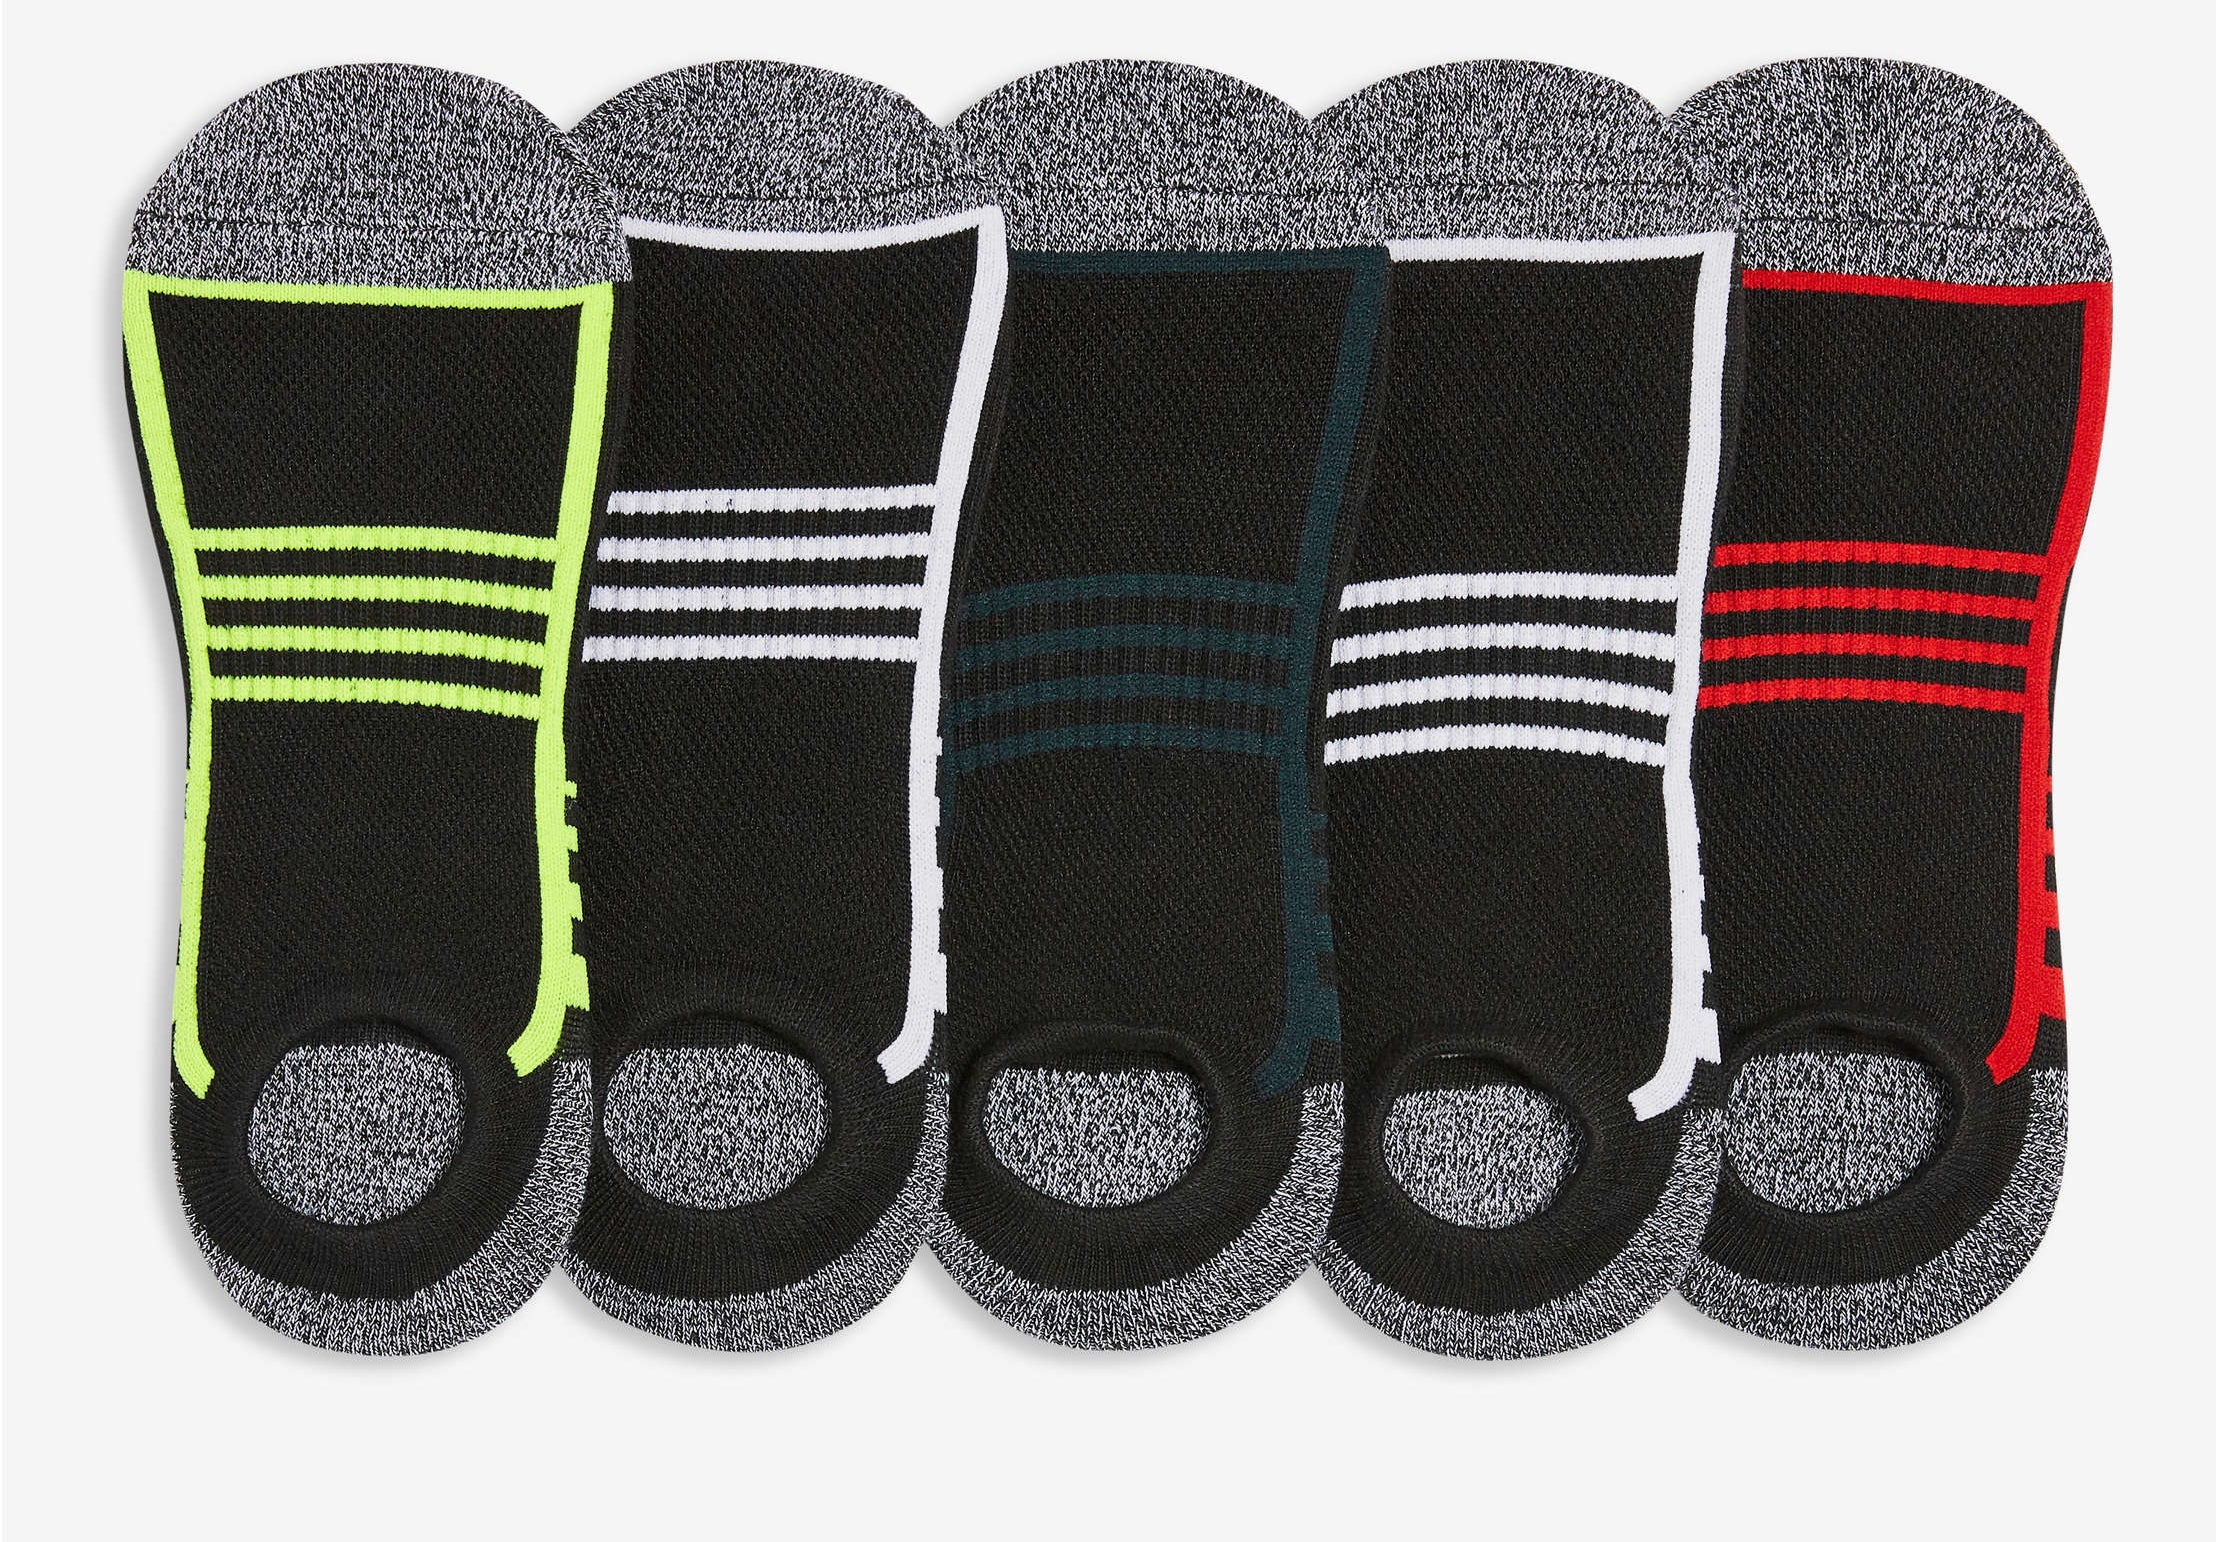 Five pairs of no-show socks in a row